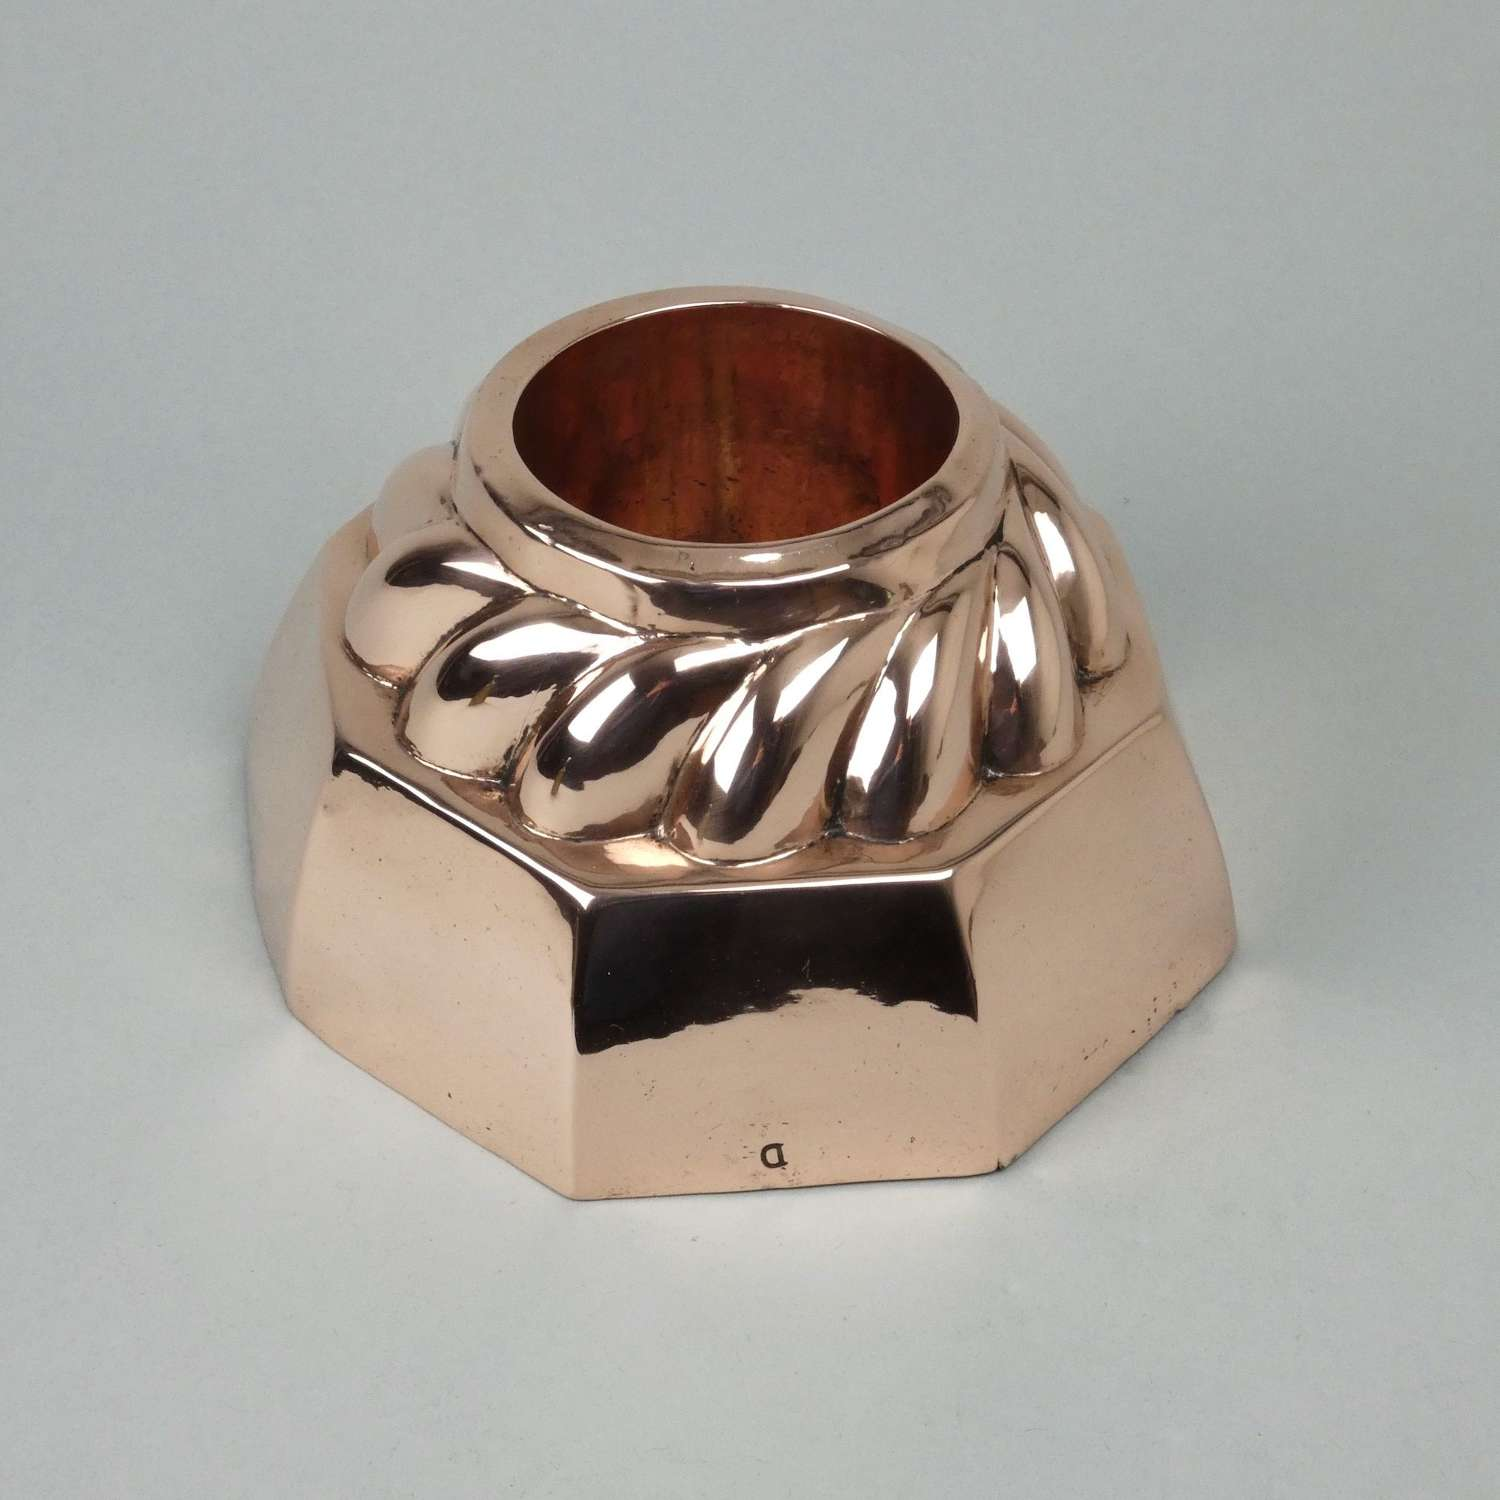 Unusual copper ring mould